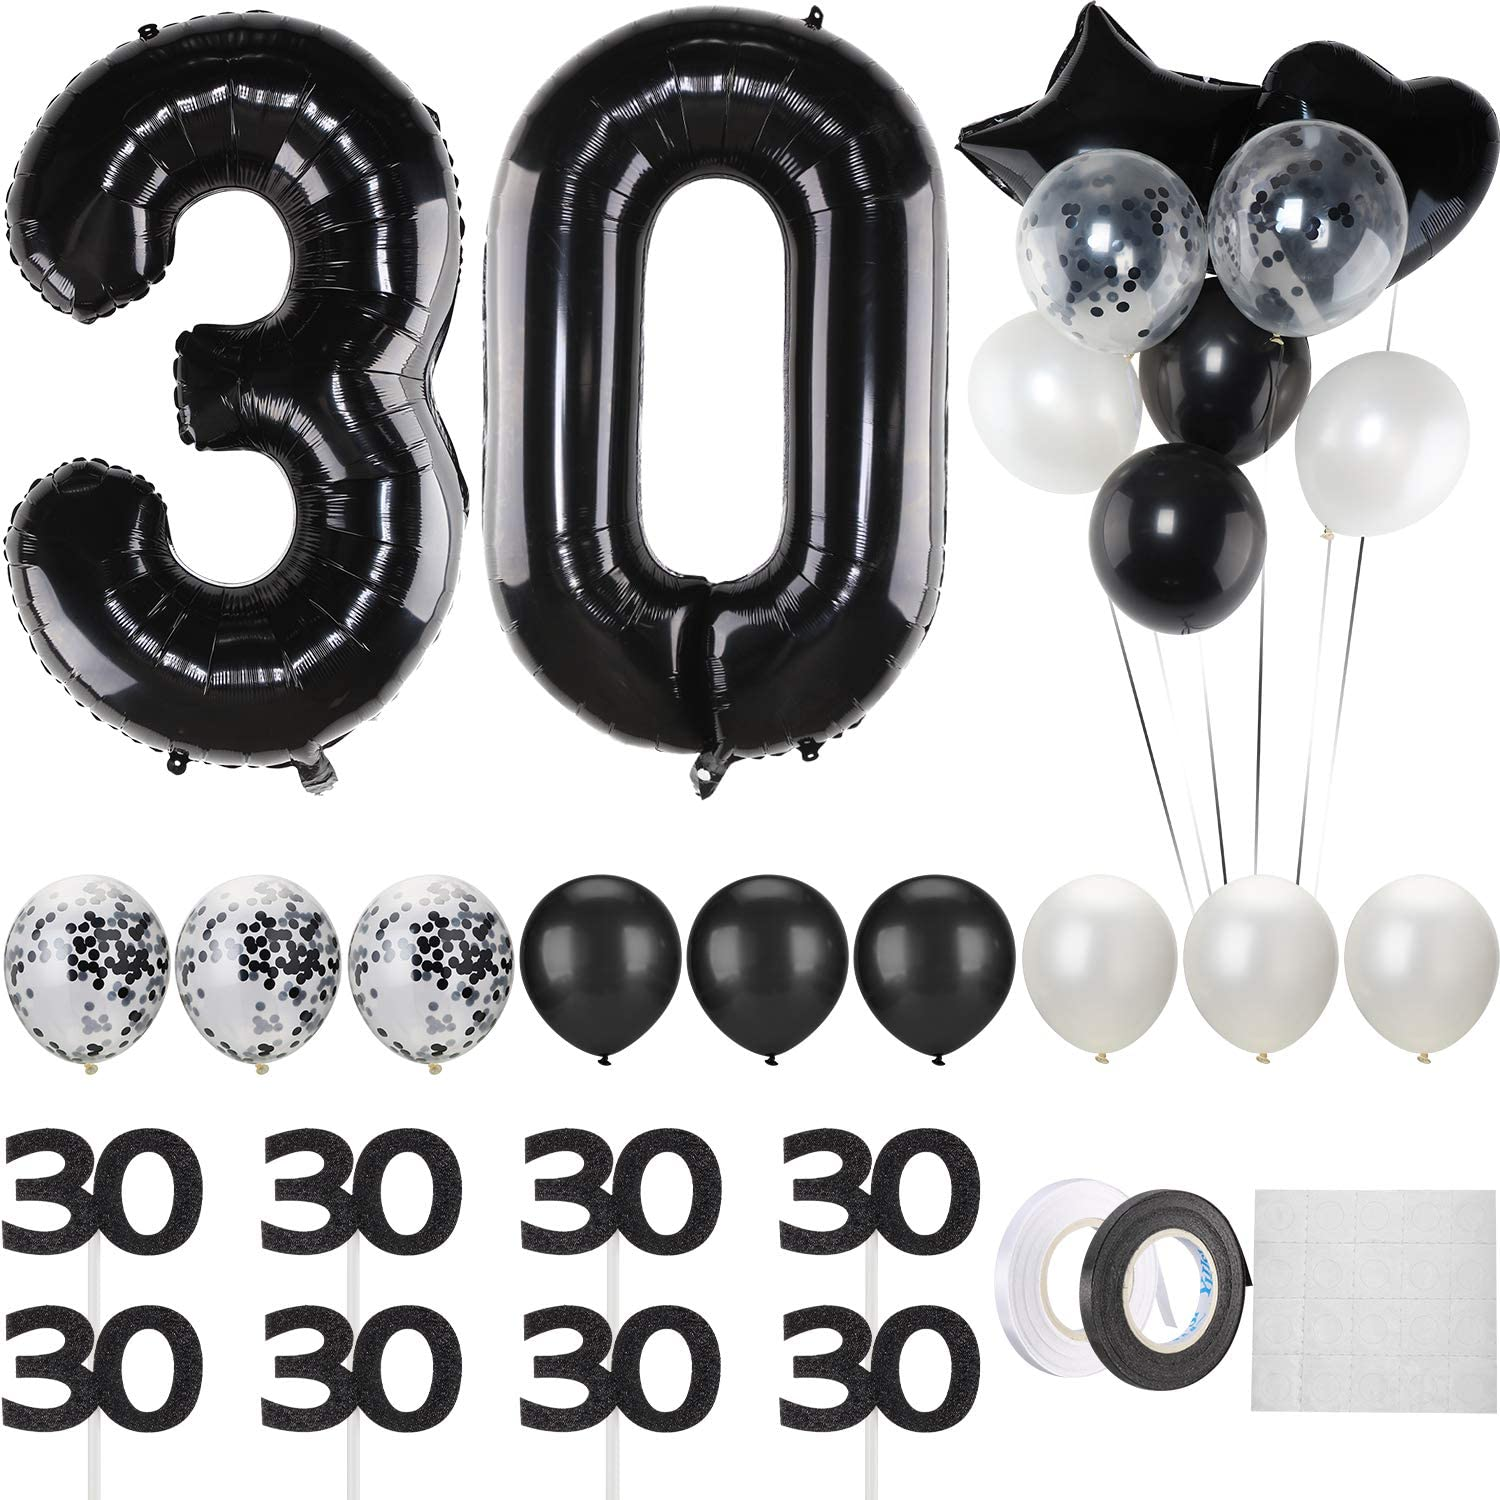 40 Inch black 30 number balloon Jumbo Foil Helium 30 Balloons,Wh